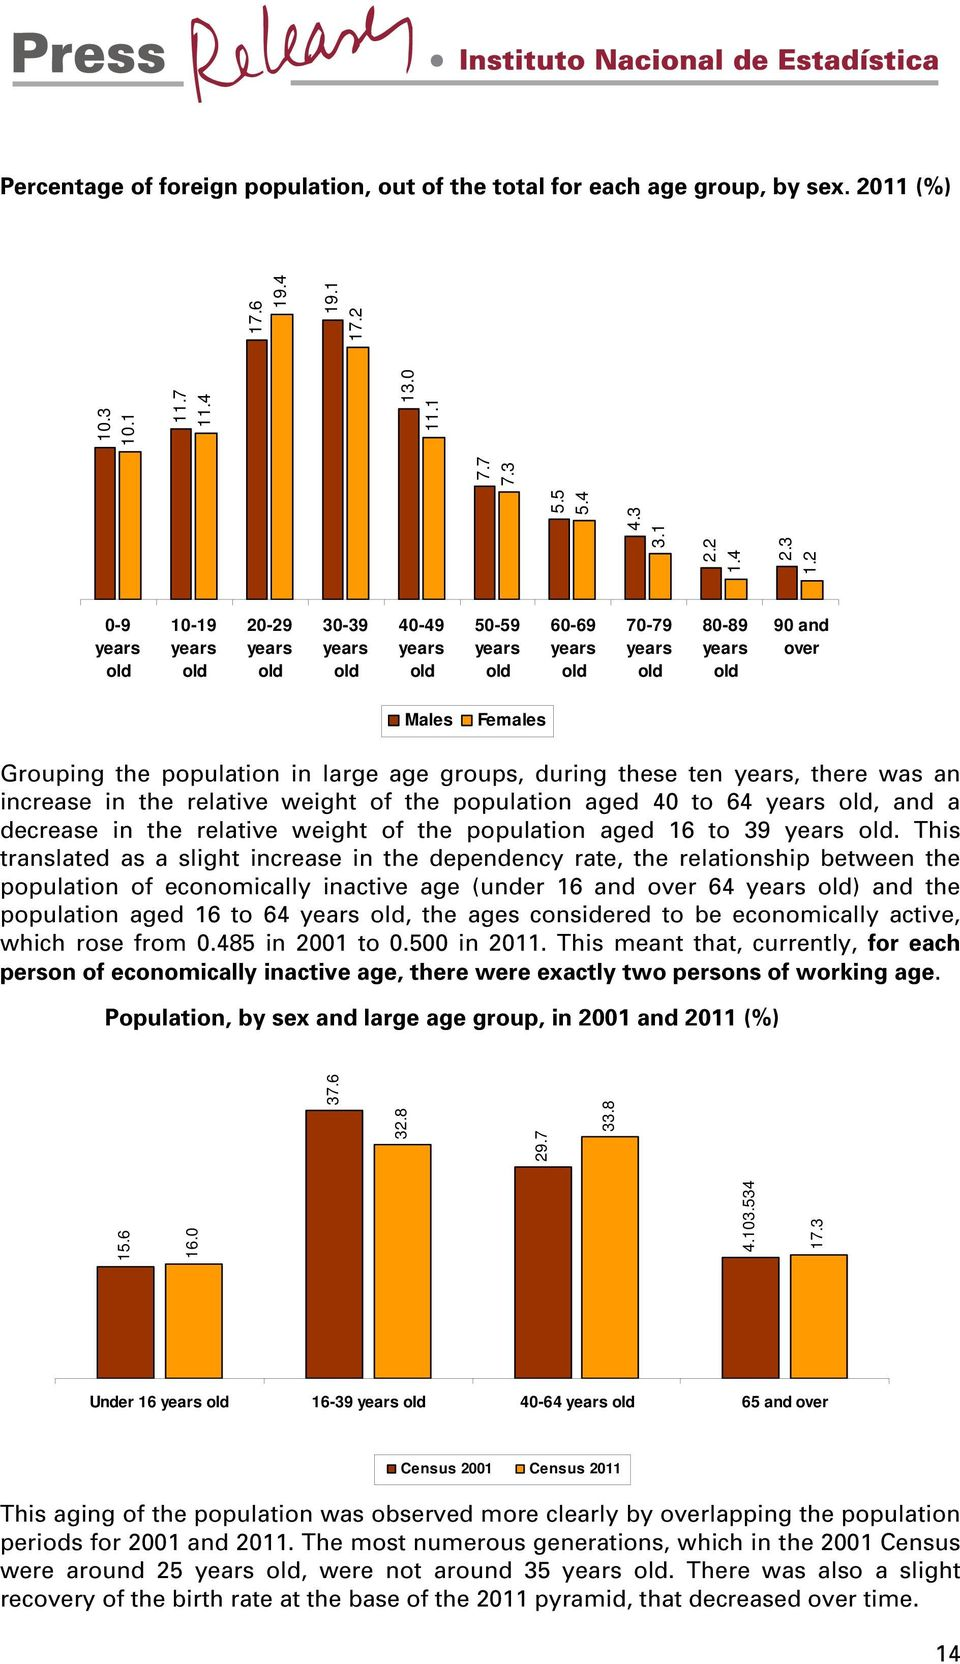 large age groups, during these ten years, there was an increase in the relative weight of the population aged 40 to 64 years old, and a decrease in the relative weight of the population aged 16 to 39